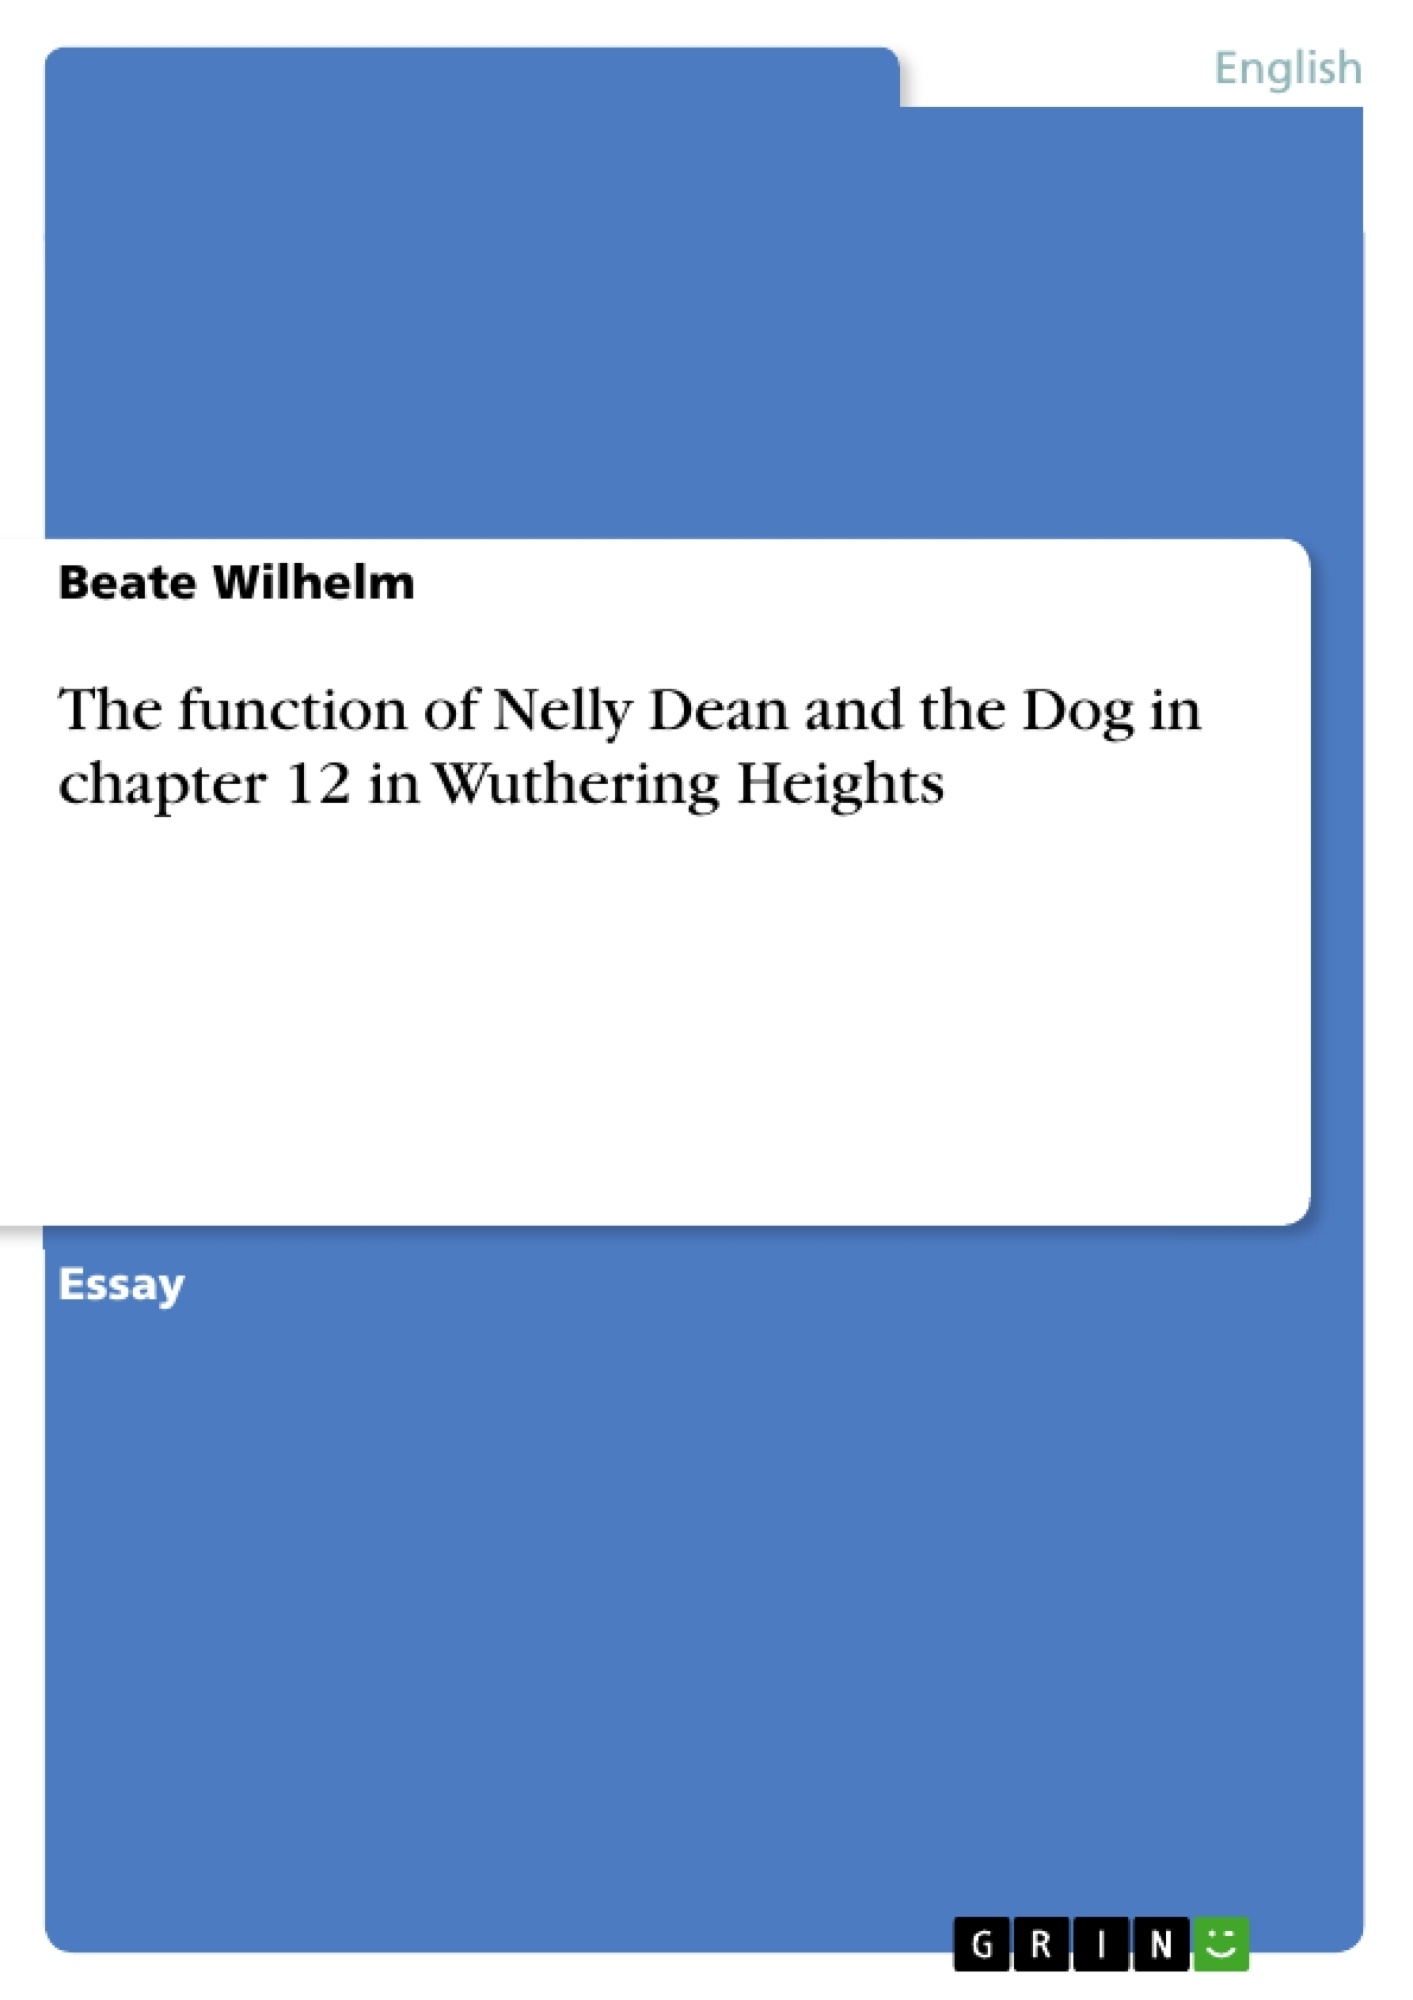 wuthering heights nelly dean essay